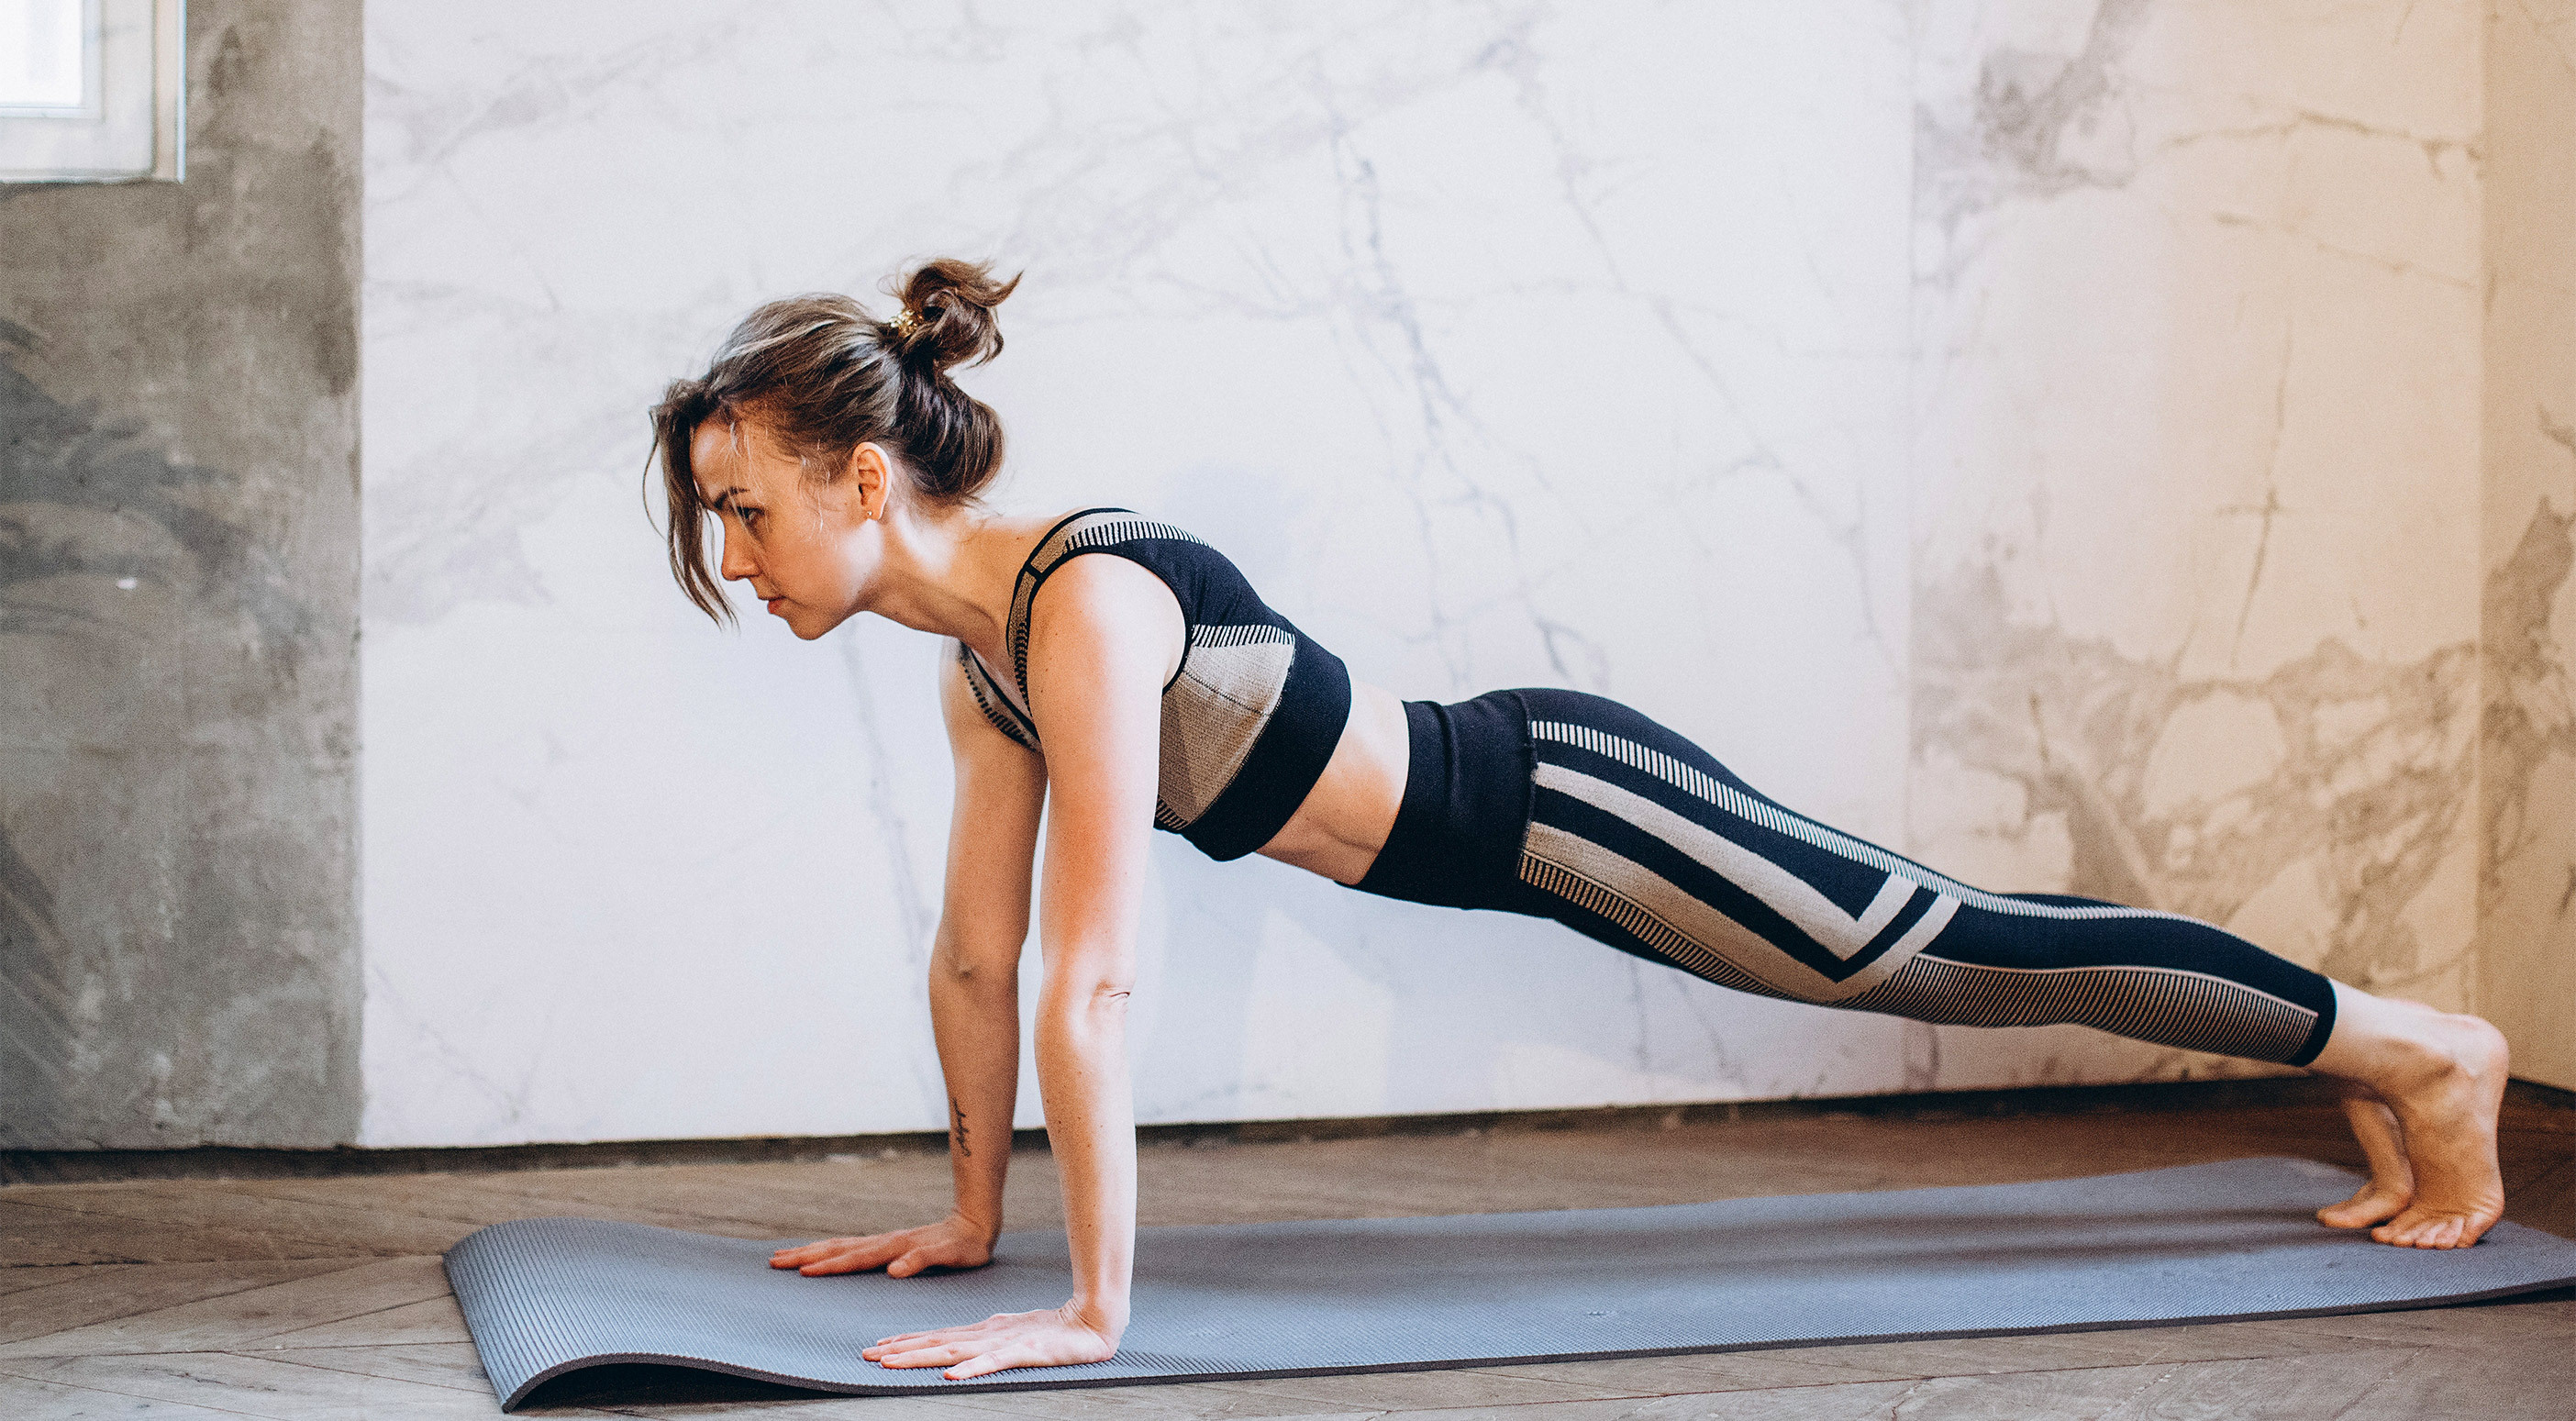 Woman doing plank as a core exercise